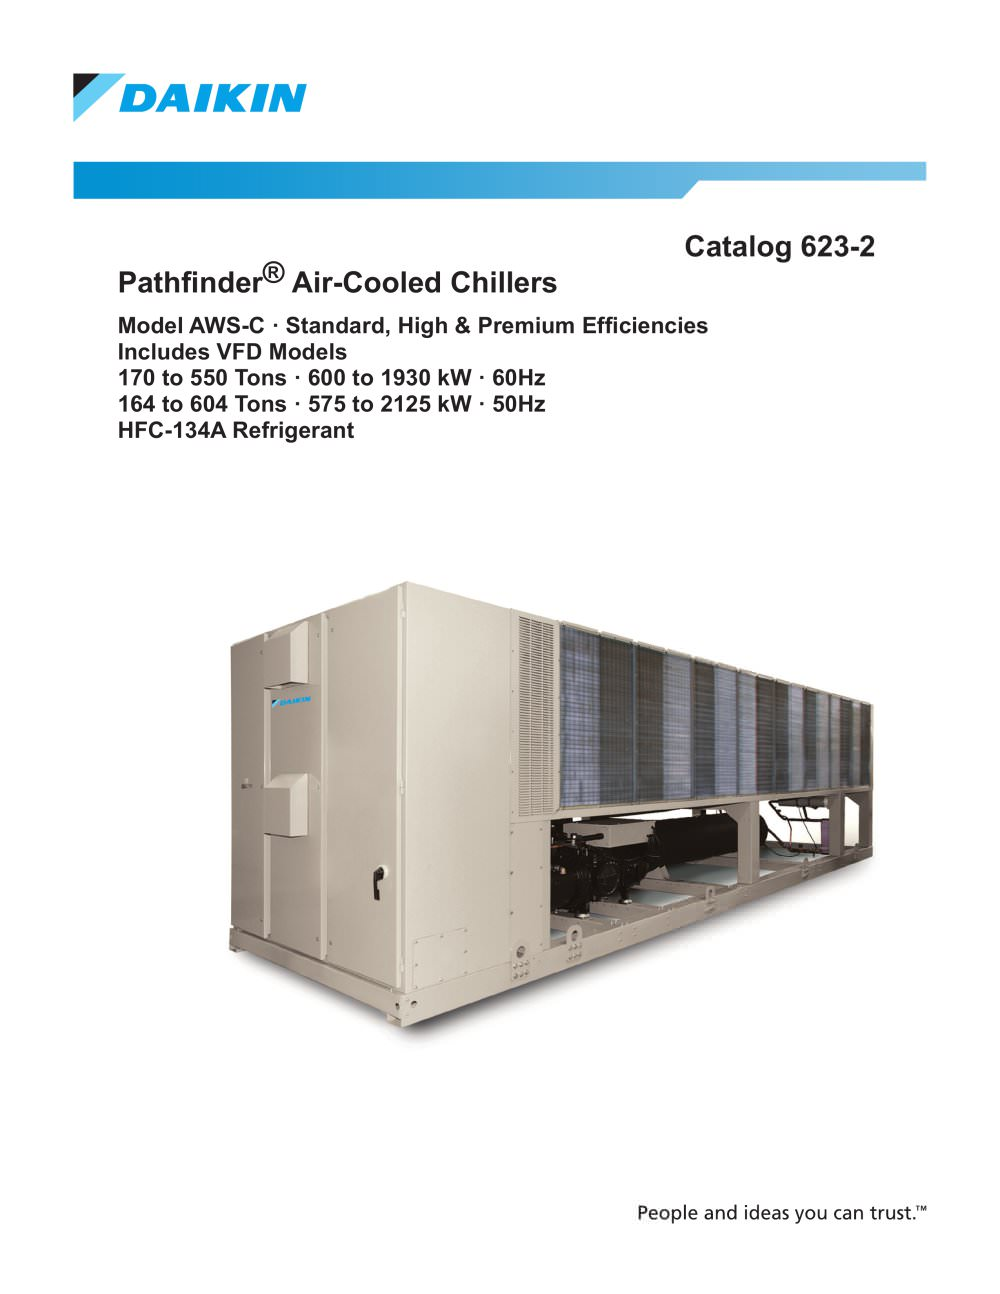 cat 623 2 pathfinder aws air cooled screw compressor chiller 582207_1b cat 623 2 pathfinder aws air cooled screw compressor chiller  at bayanpartner.co